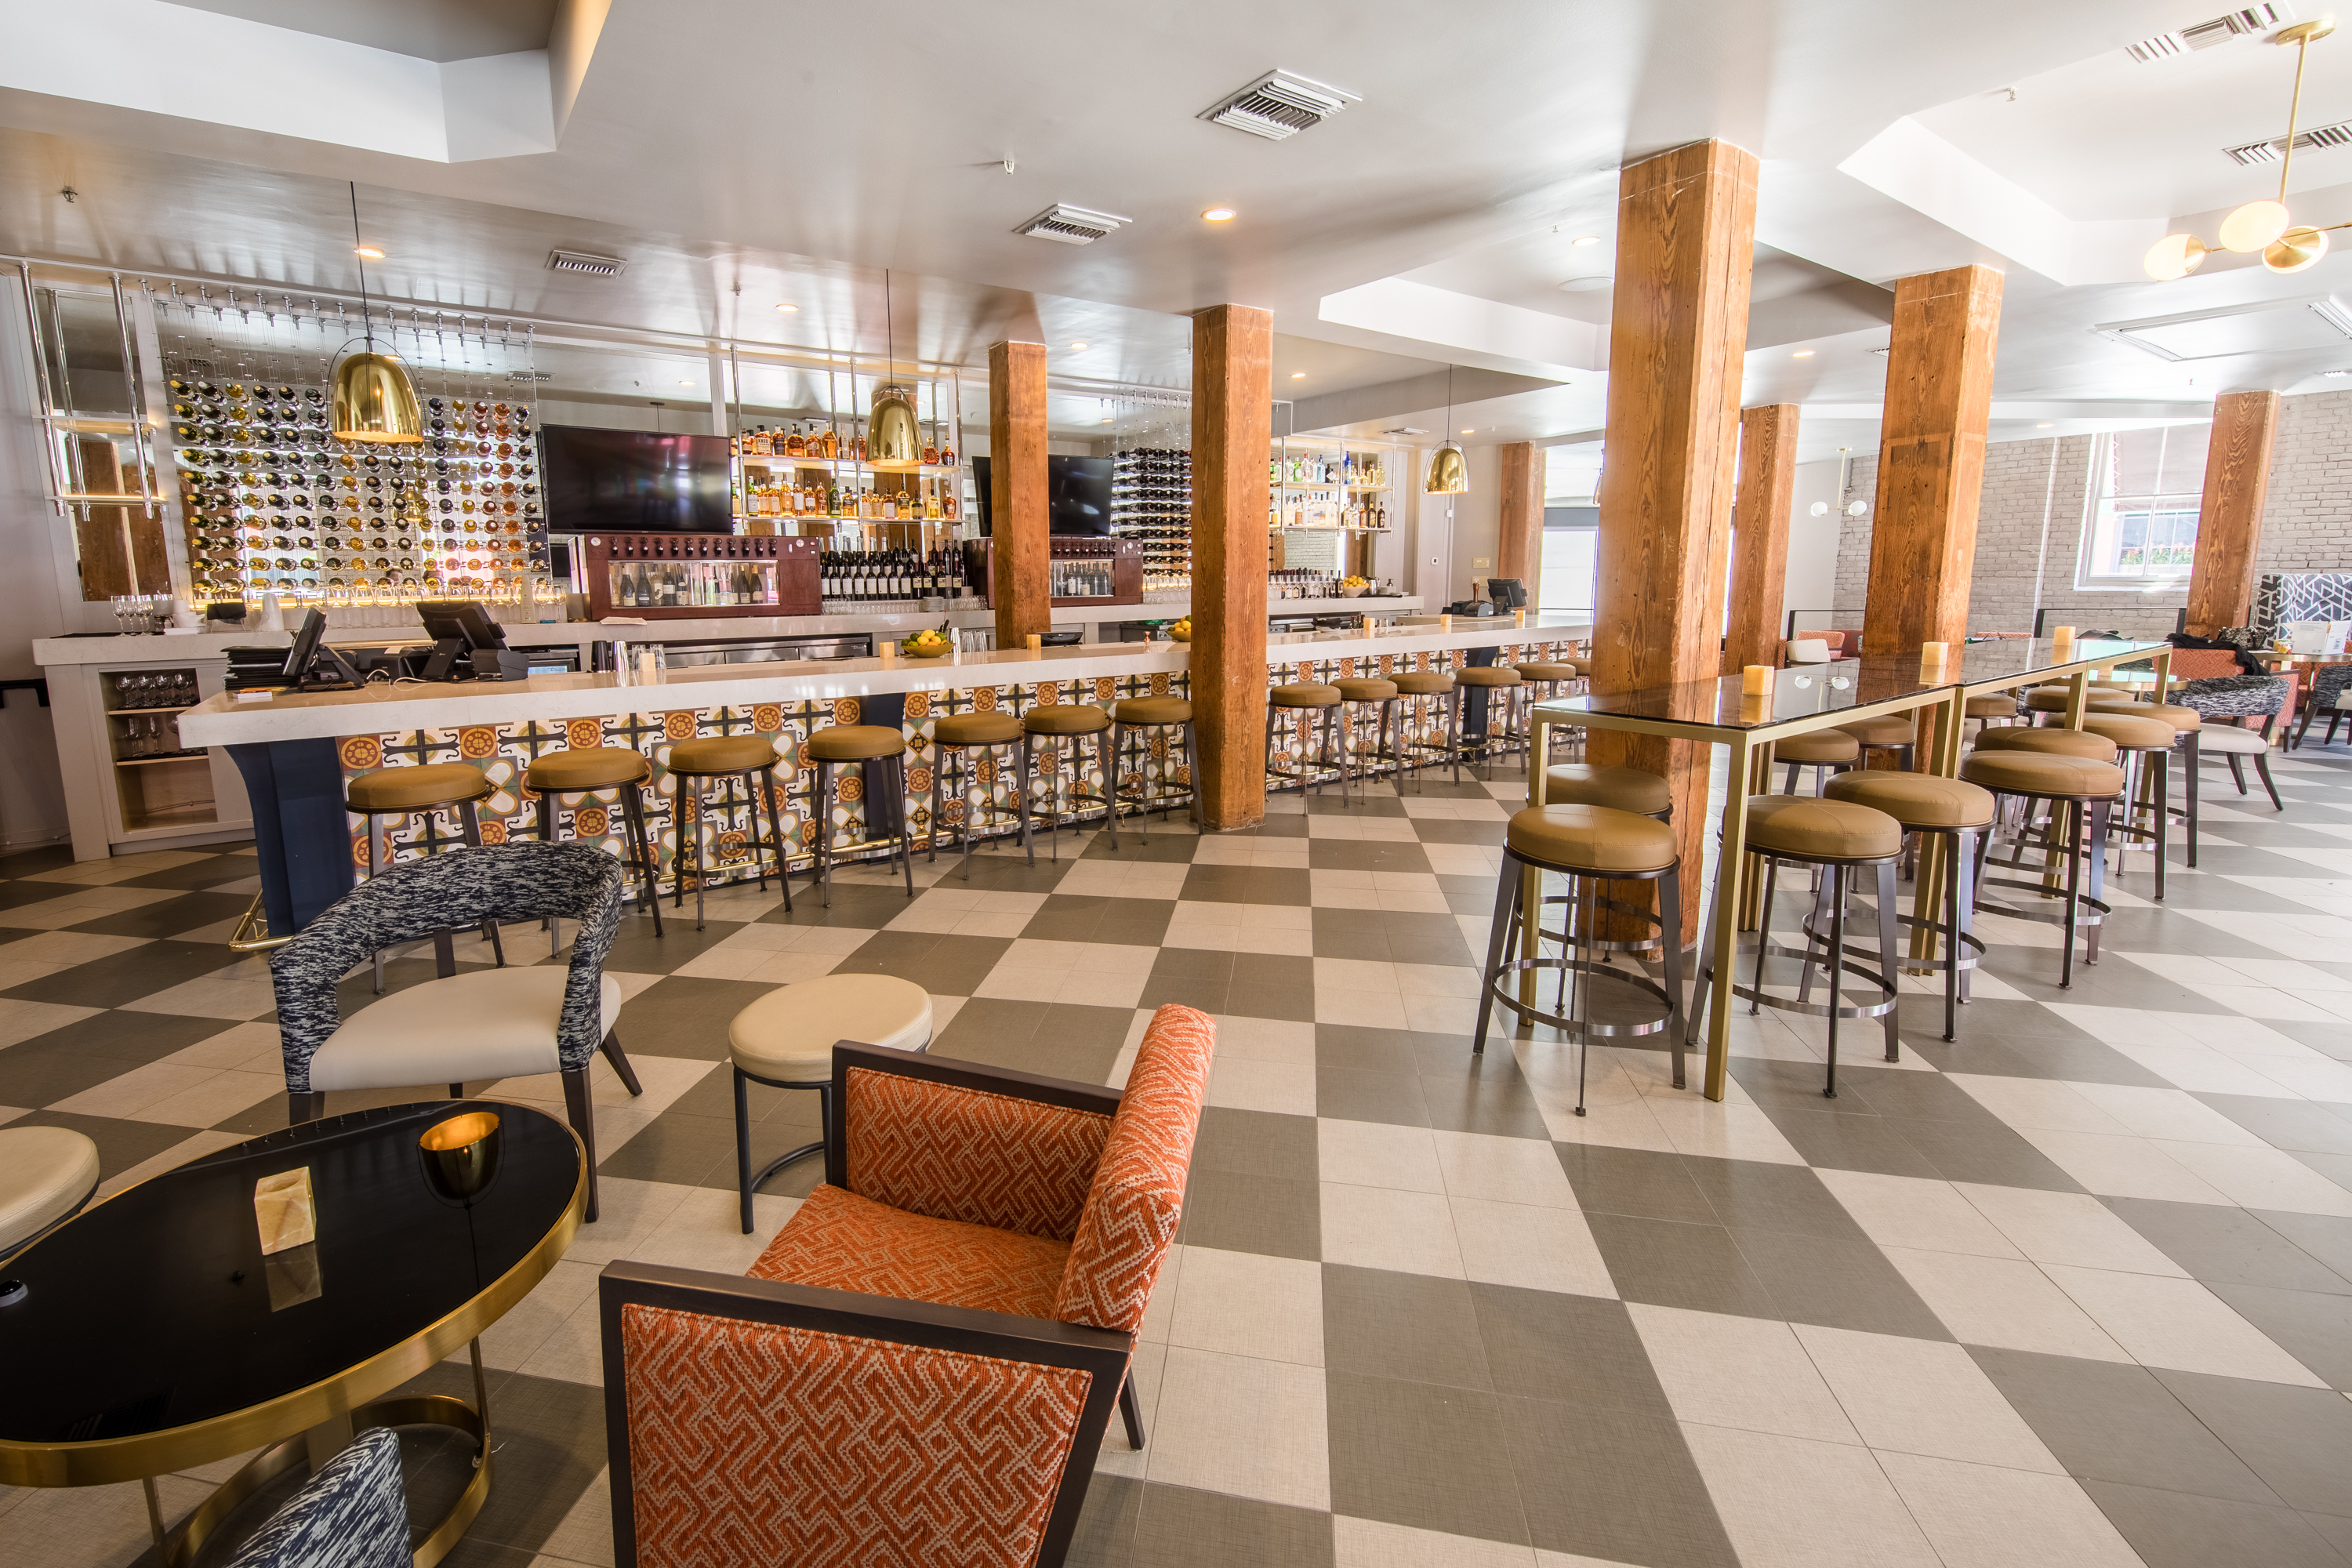 Guests From Tommys Wine Bar Will Recognize The Large Cypress Columns That Remain At NOSH